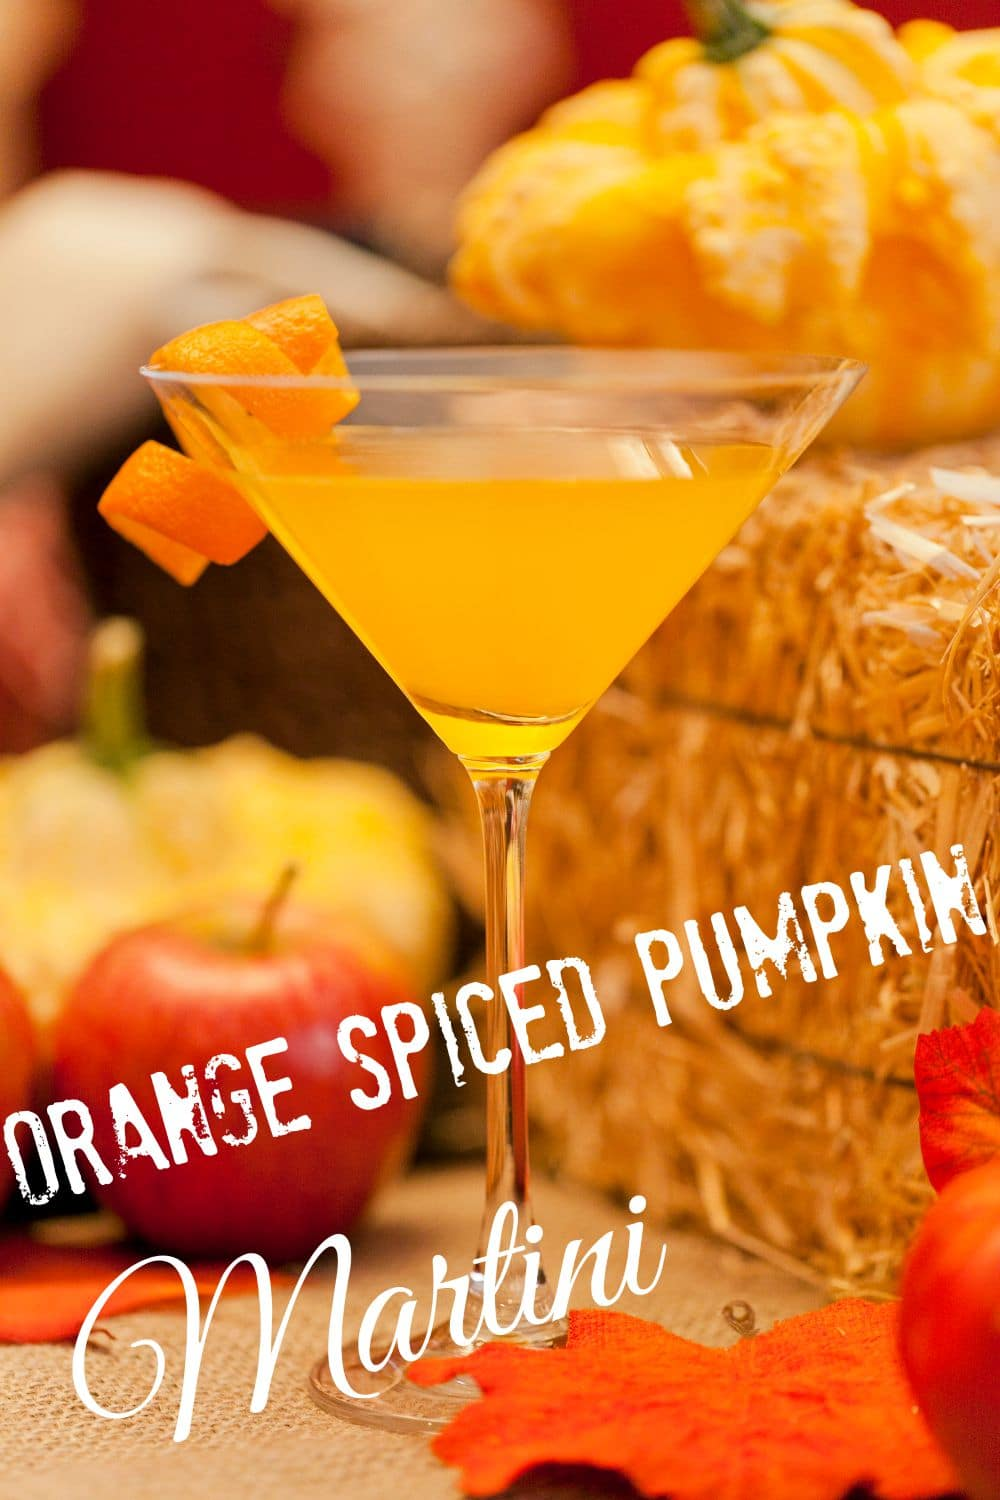 orange spiced pumpkin martini-recipe